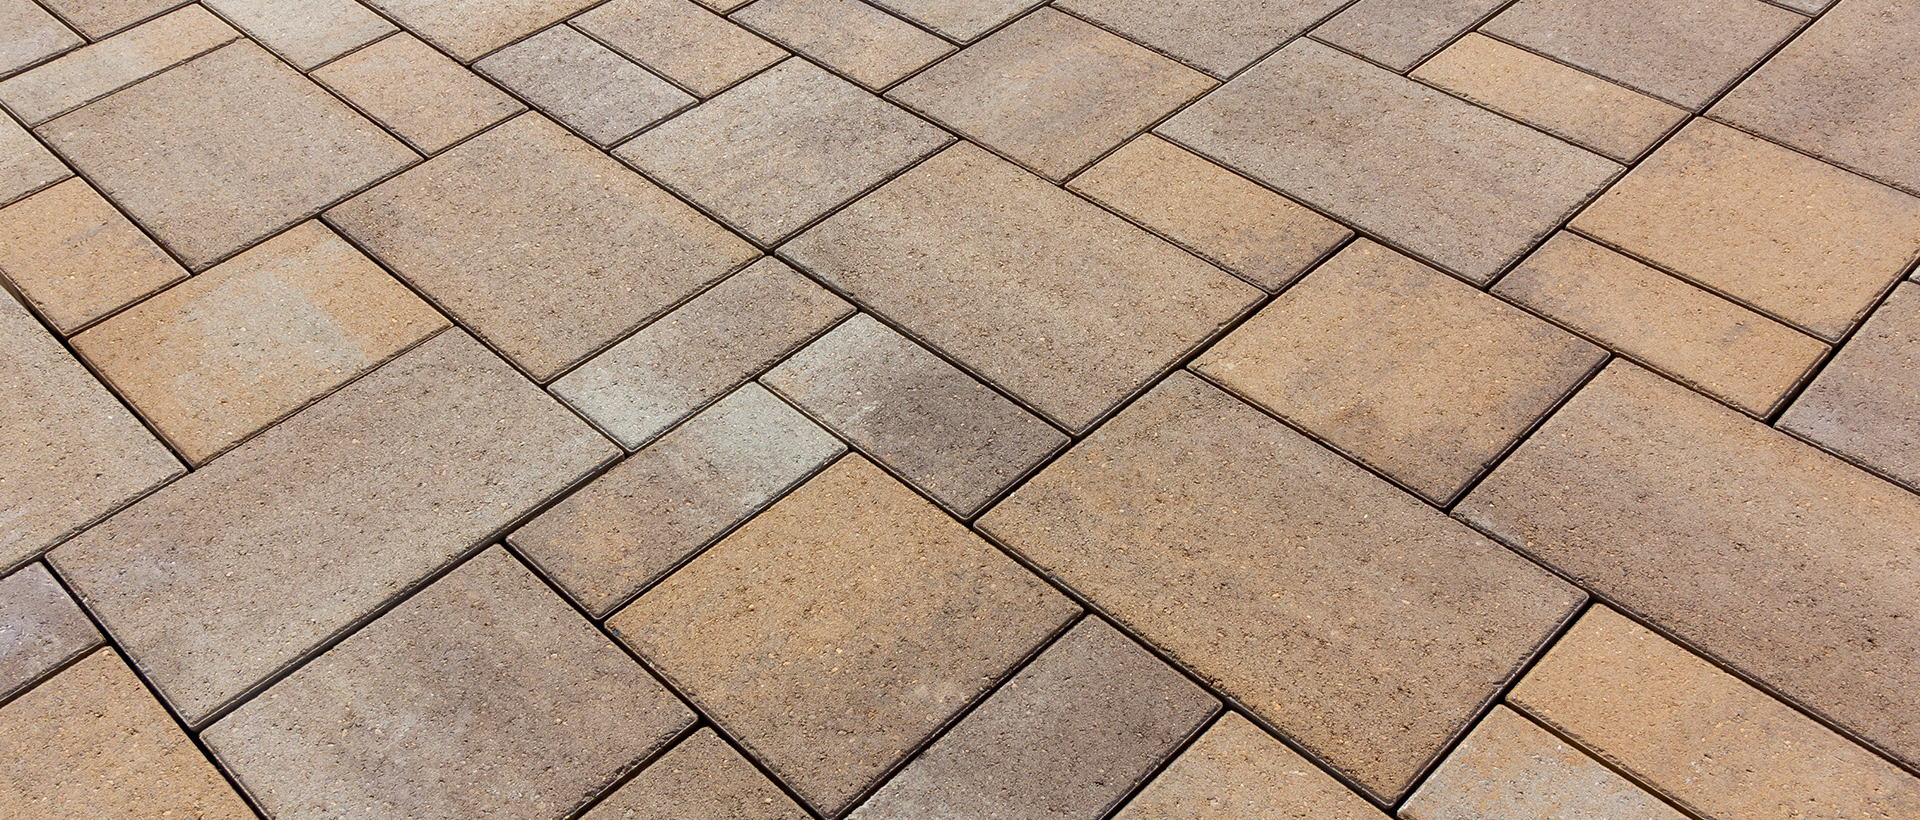 Reno is a three-piece, one-pallet paver system suitable for pedestrian and vehicular applications. Popular for its price point, its aesthetic appeal and ease of installation, Reno installs quickly in a random (no pattern) or simple fixed pattern. Tahoe 6cm Paver is the same system as Reno, but with a slate/embossed surface.